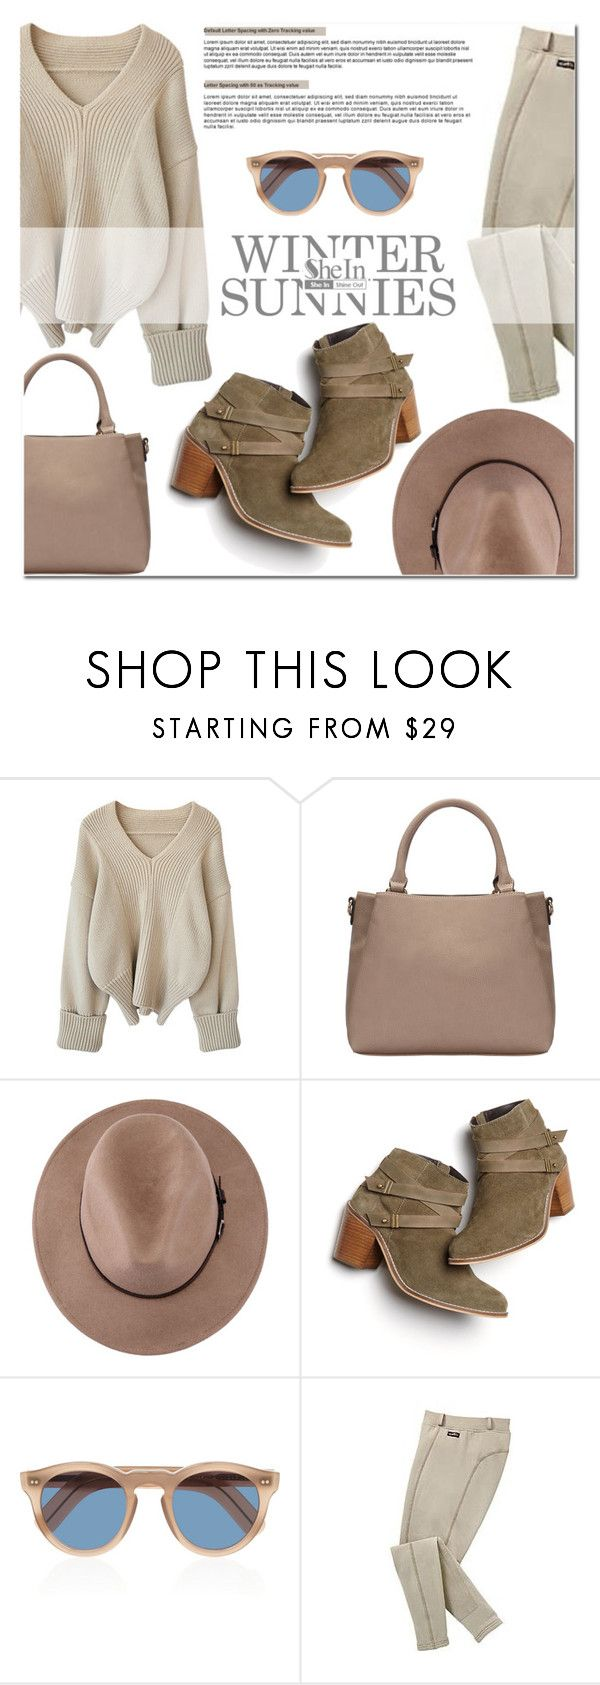 """""""Untitled #1705"""" by mirisproleca ❤ liked on Polyvore featuring moda, Monsoon, Cutler and Gross, vintage, hattrend y wintersunnies"""